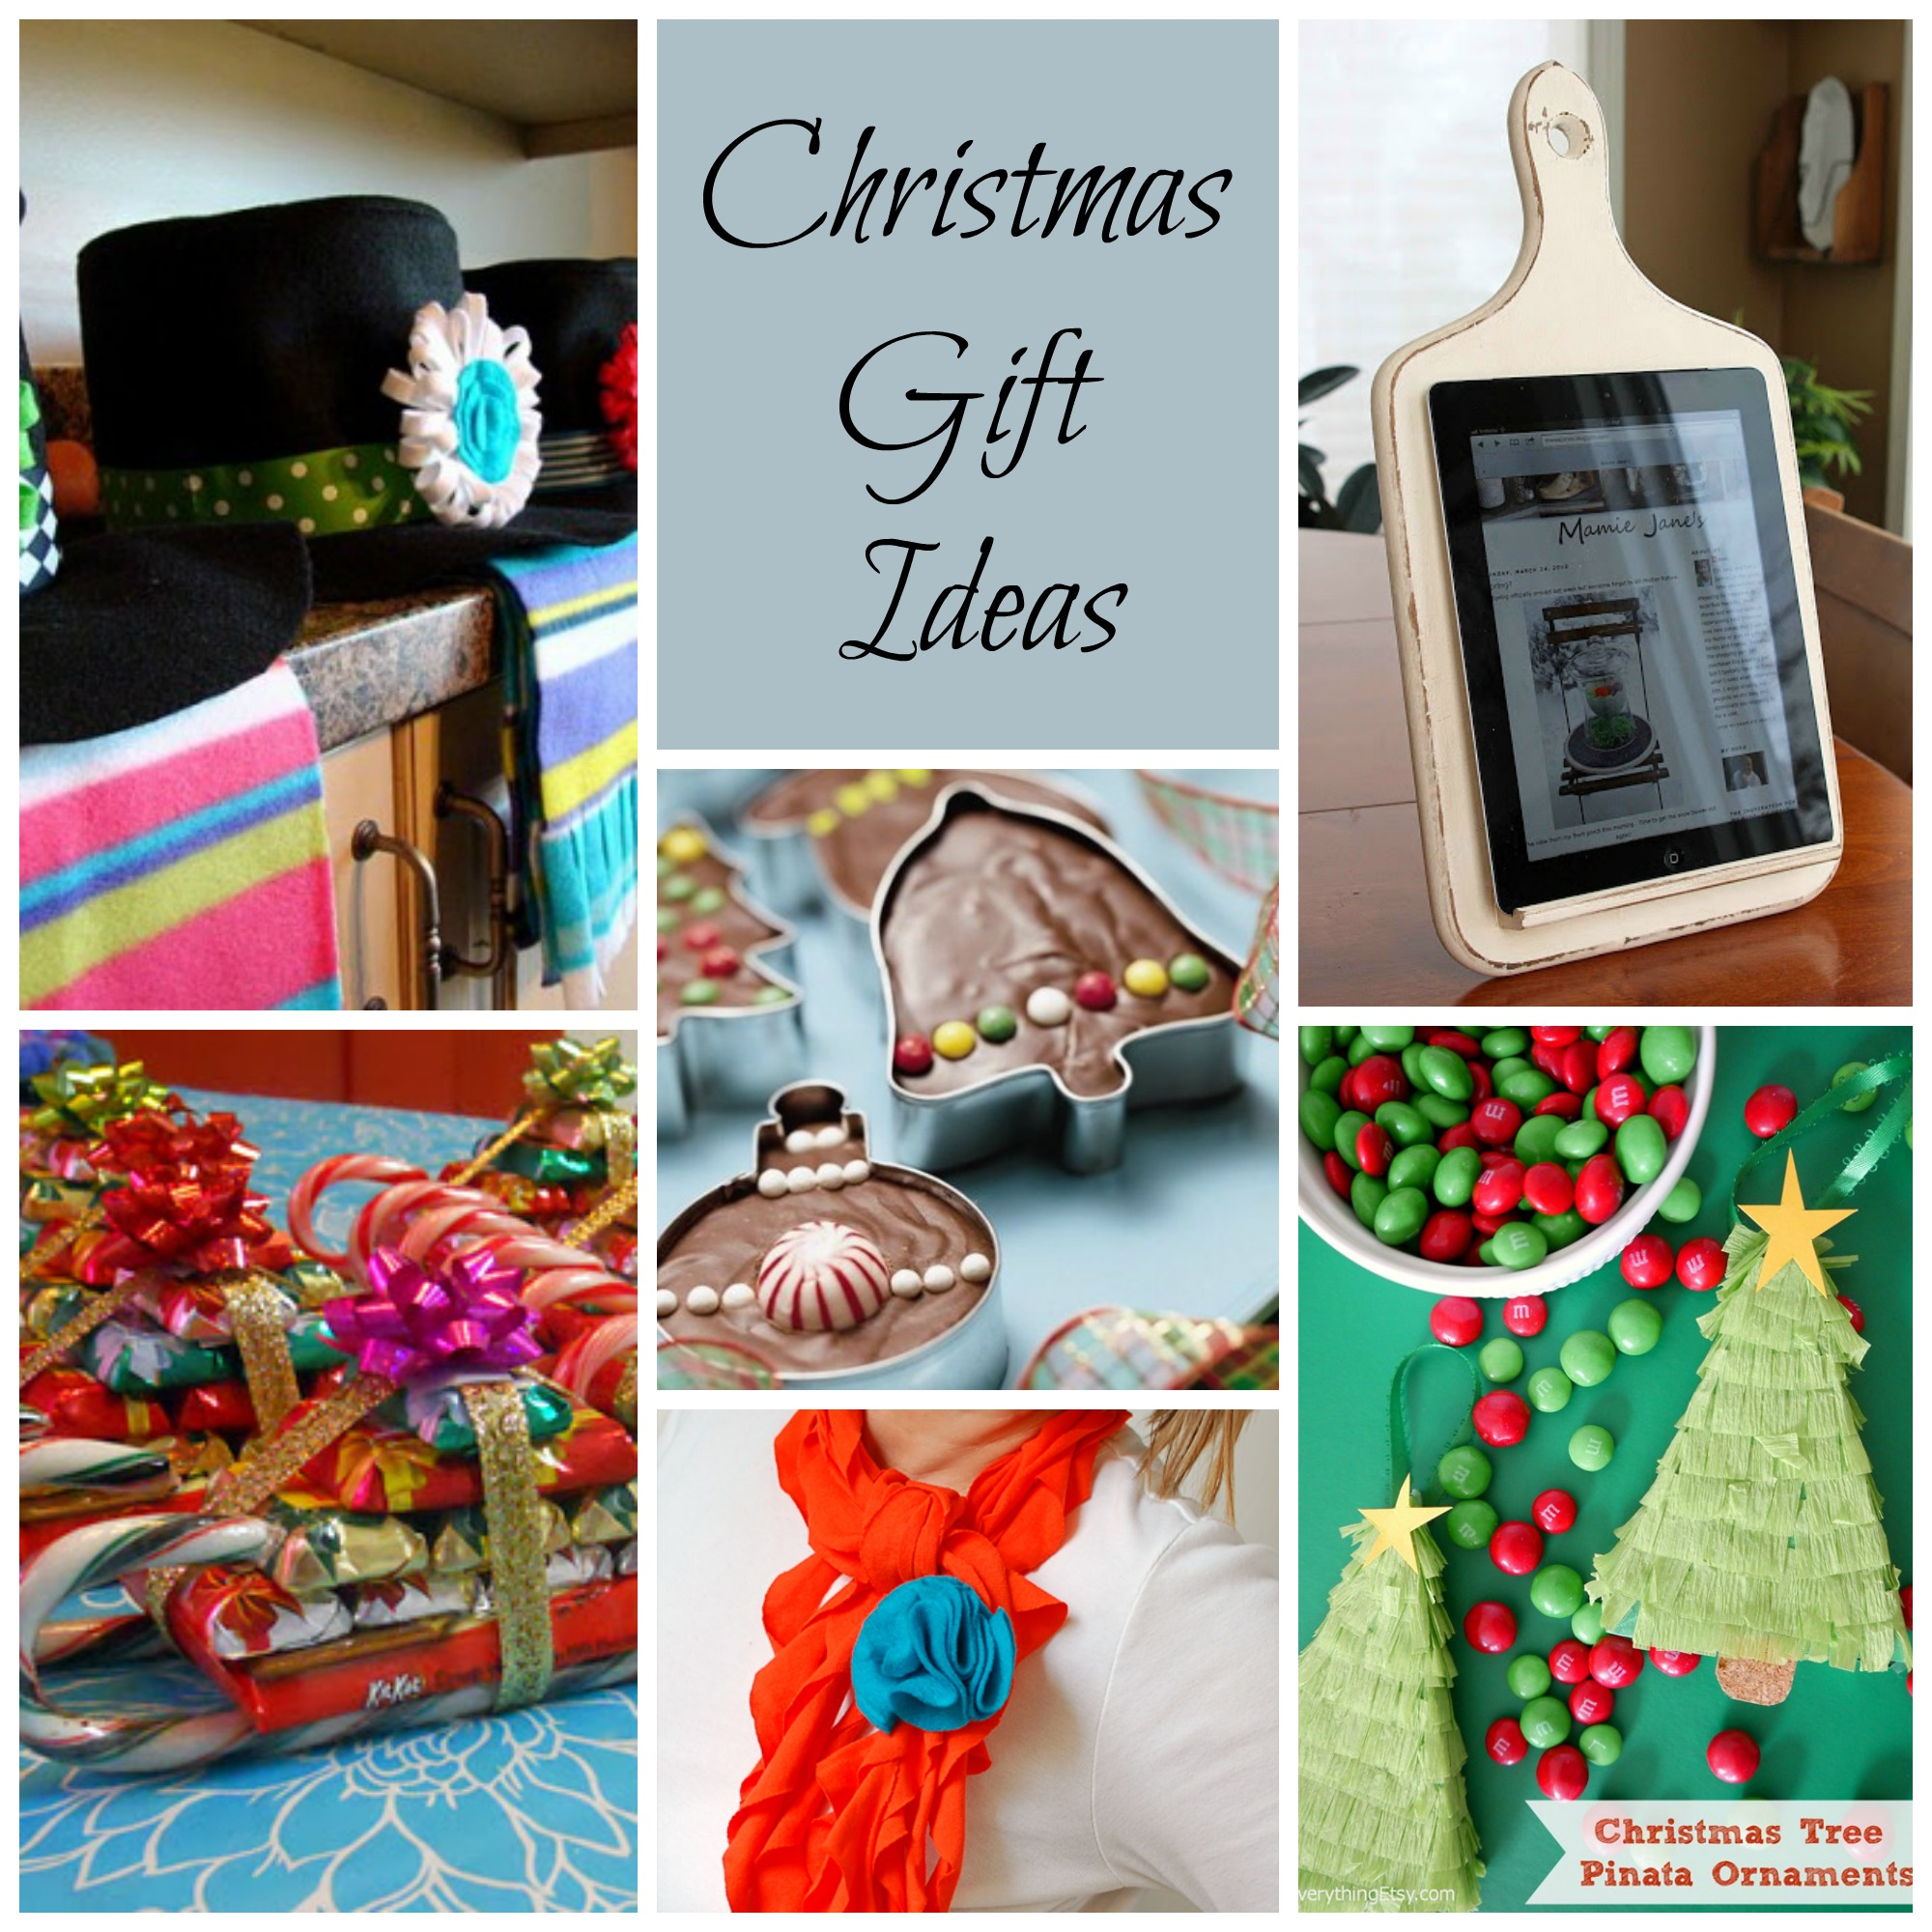 Frugal Christmas Gift Ideas - Saving Cent by Cent